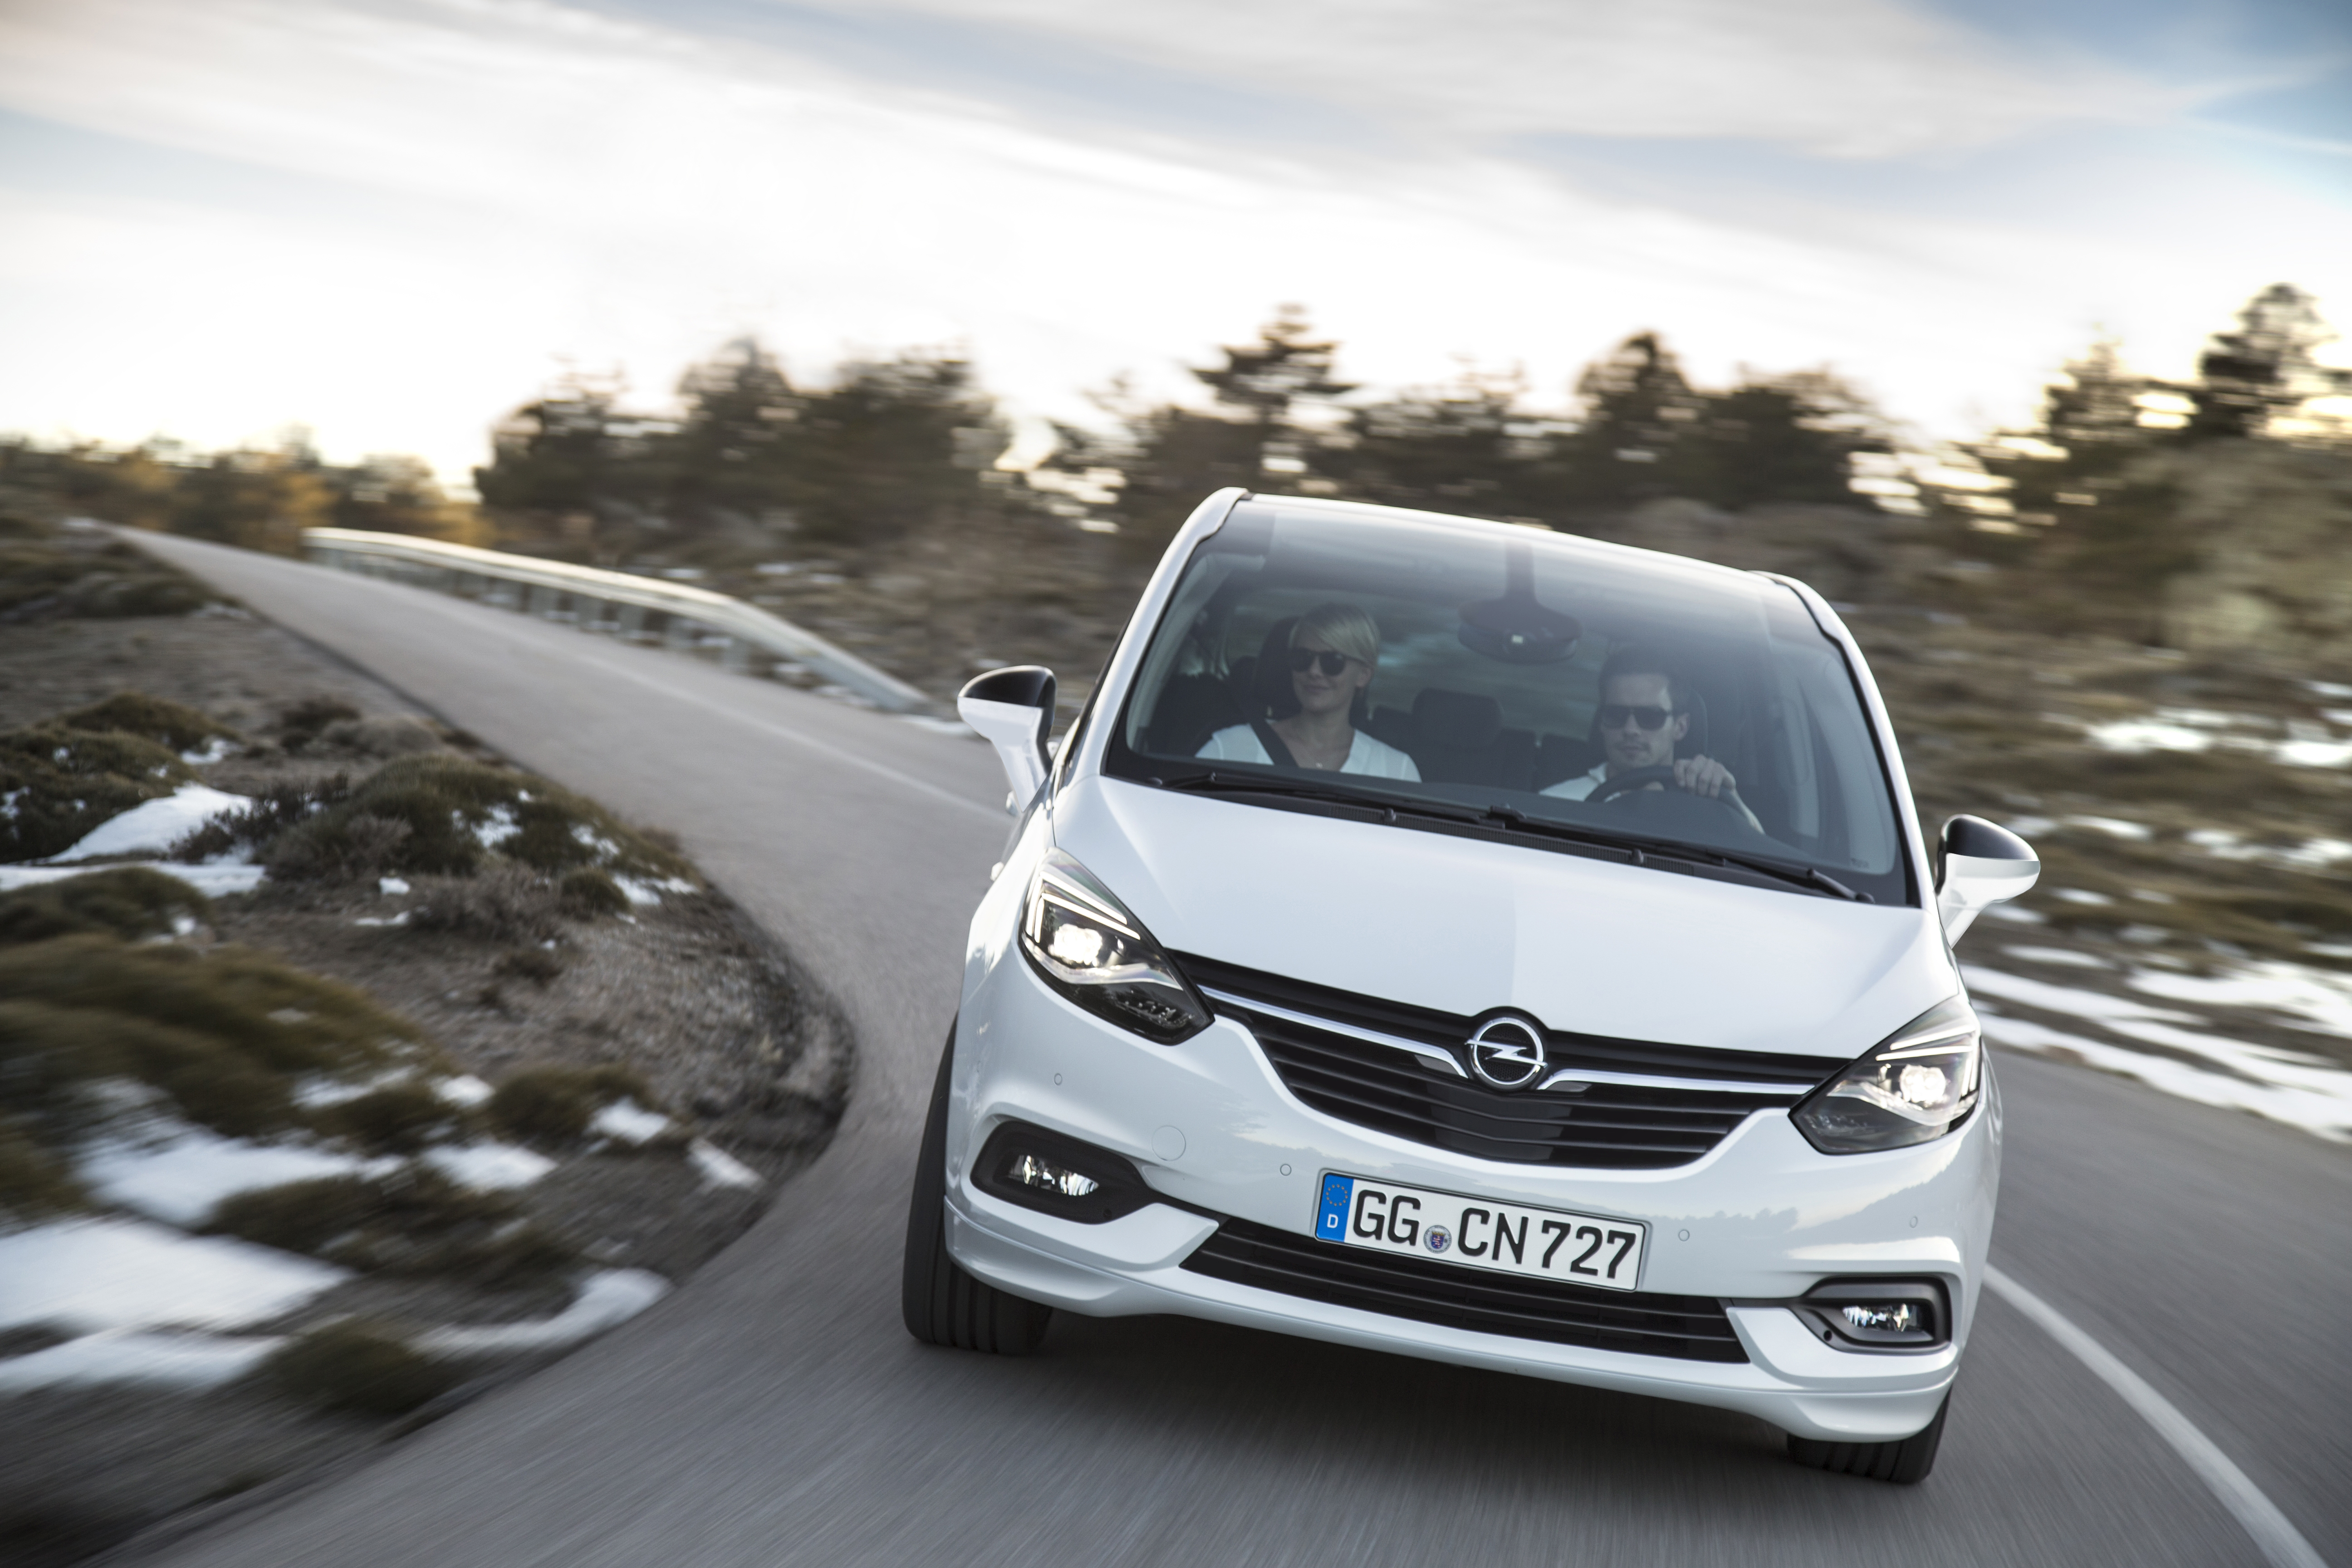 opel vauxhall zafira facelift unveiled with new face image 501932. Black Bedroom Furniture Sets. Home Design Ideas